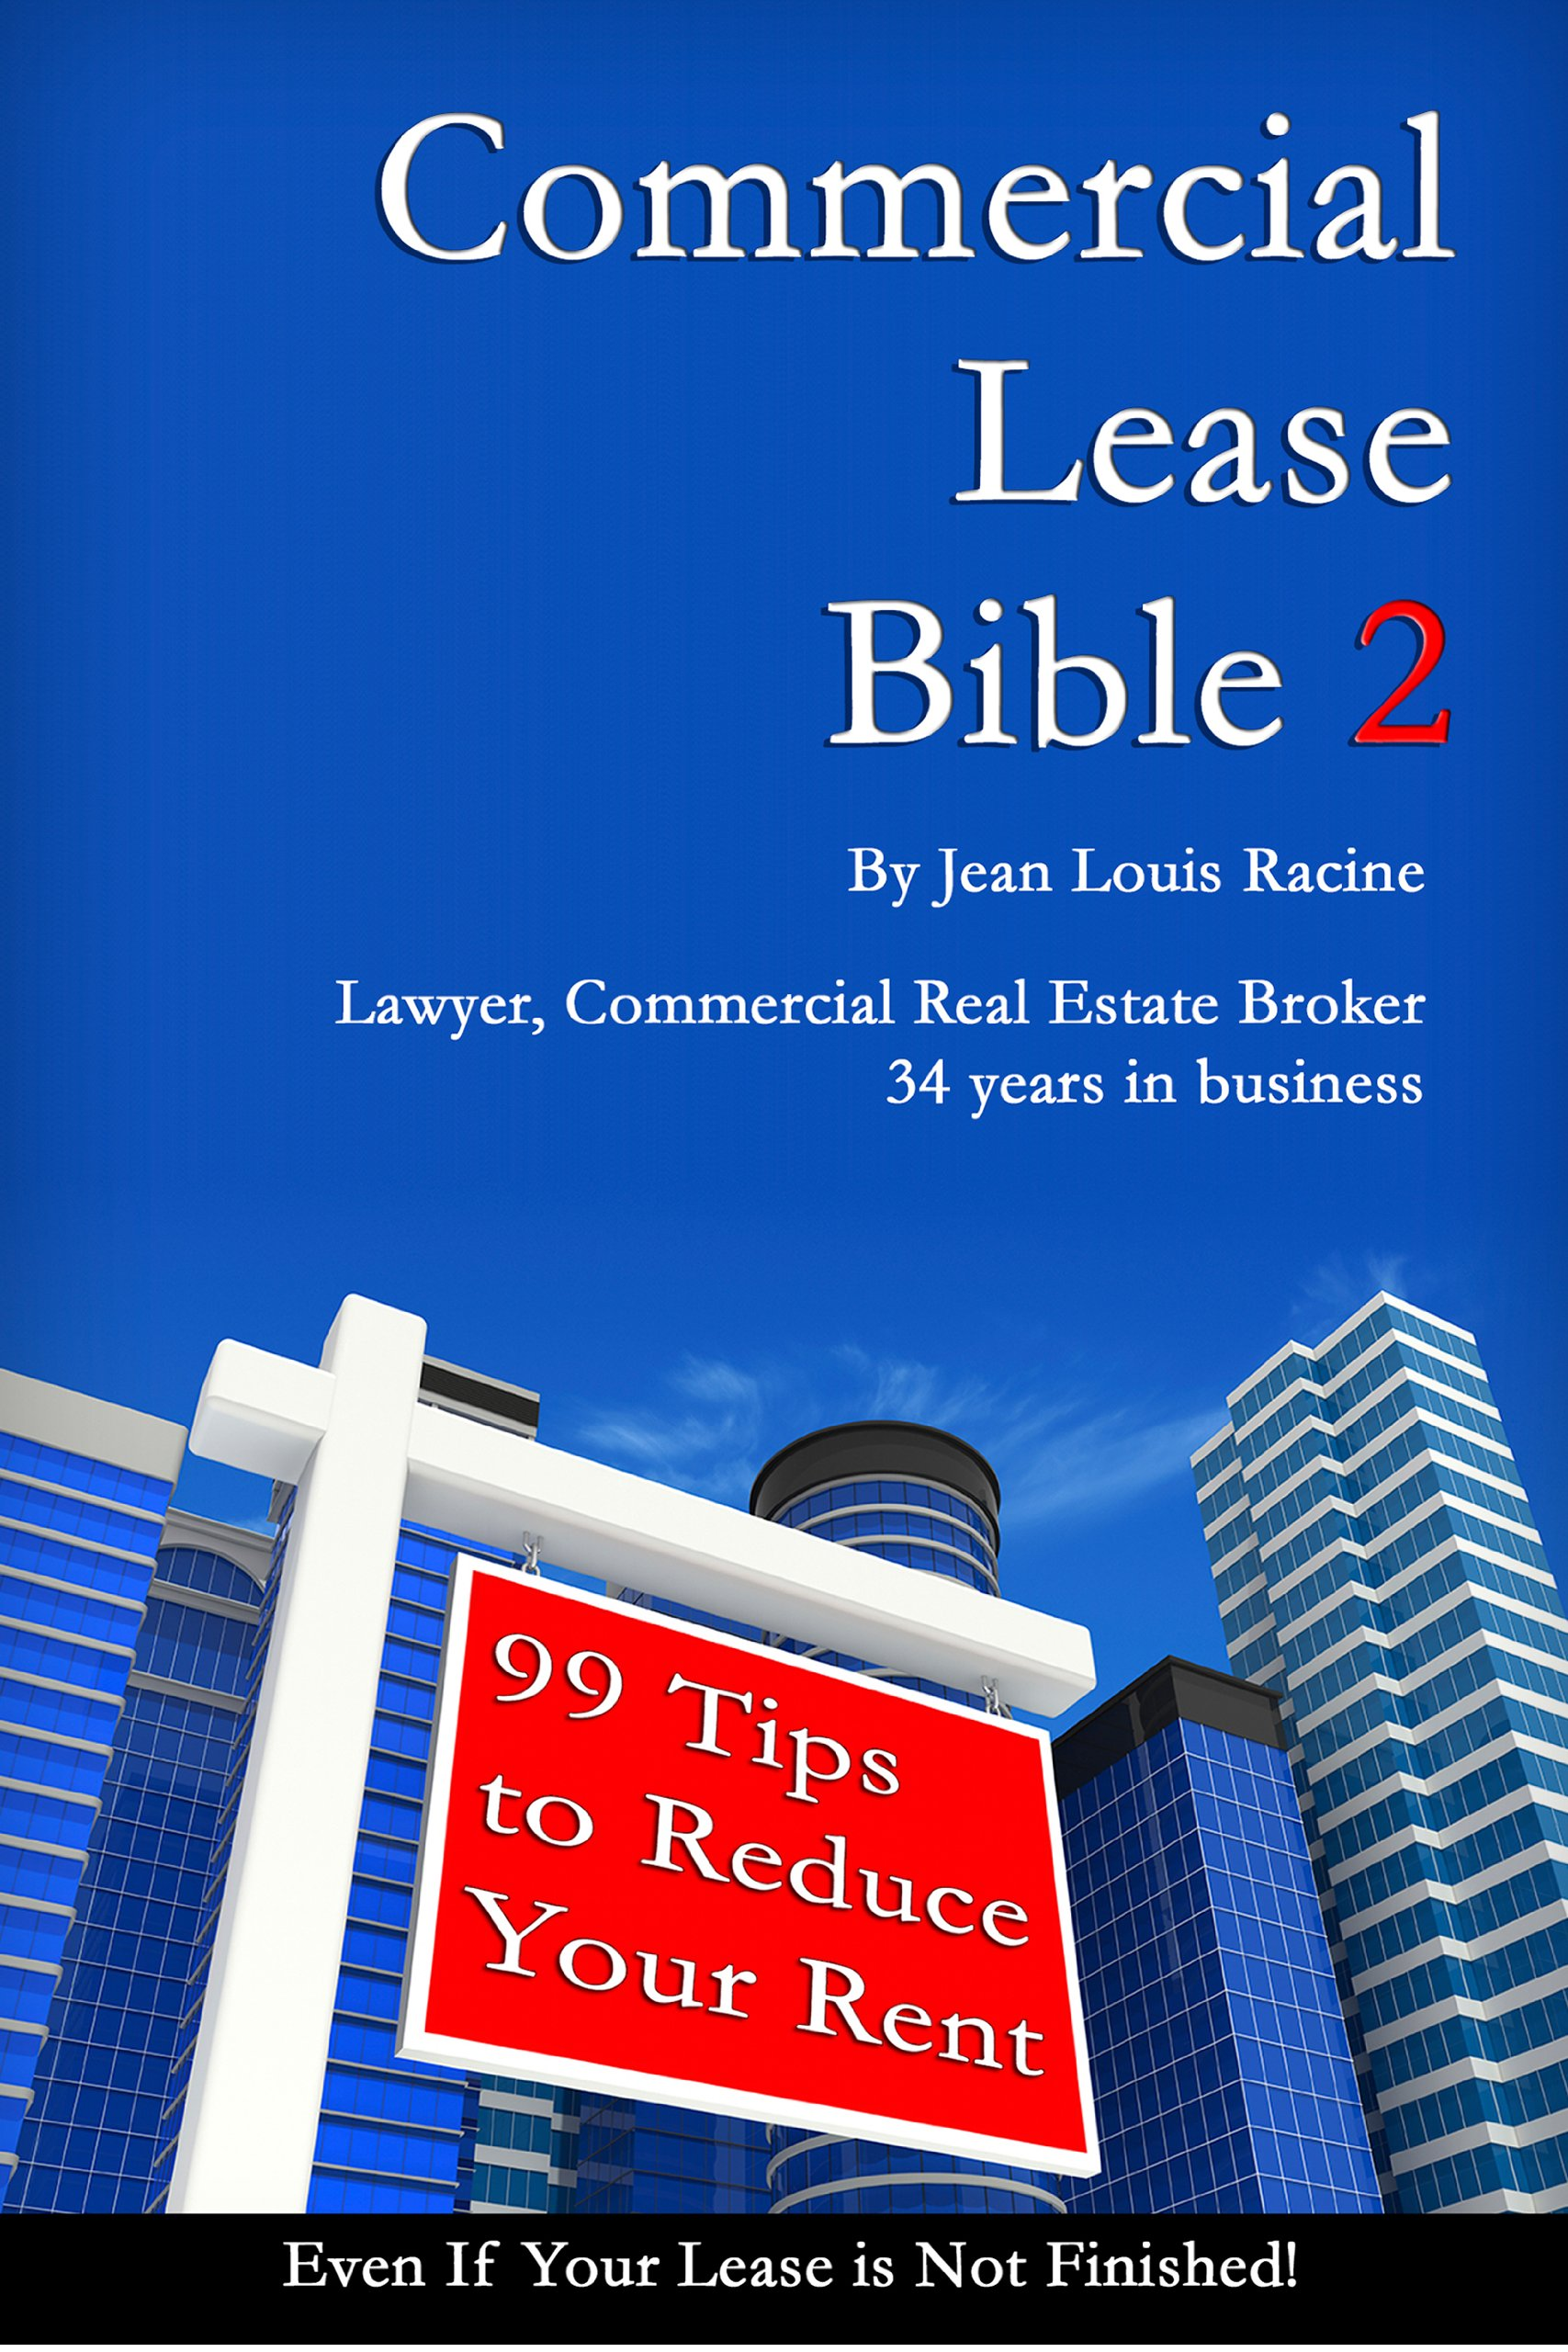 Commercial Lease Bible-2- 99 Tips to reduce Your Rent-